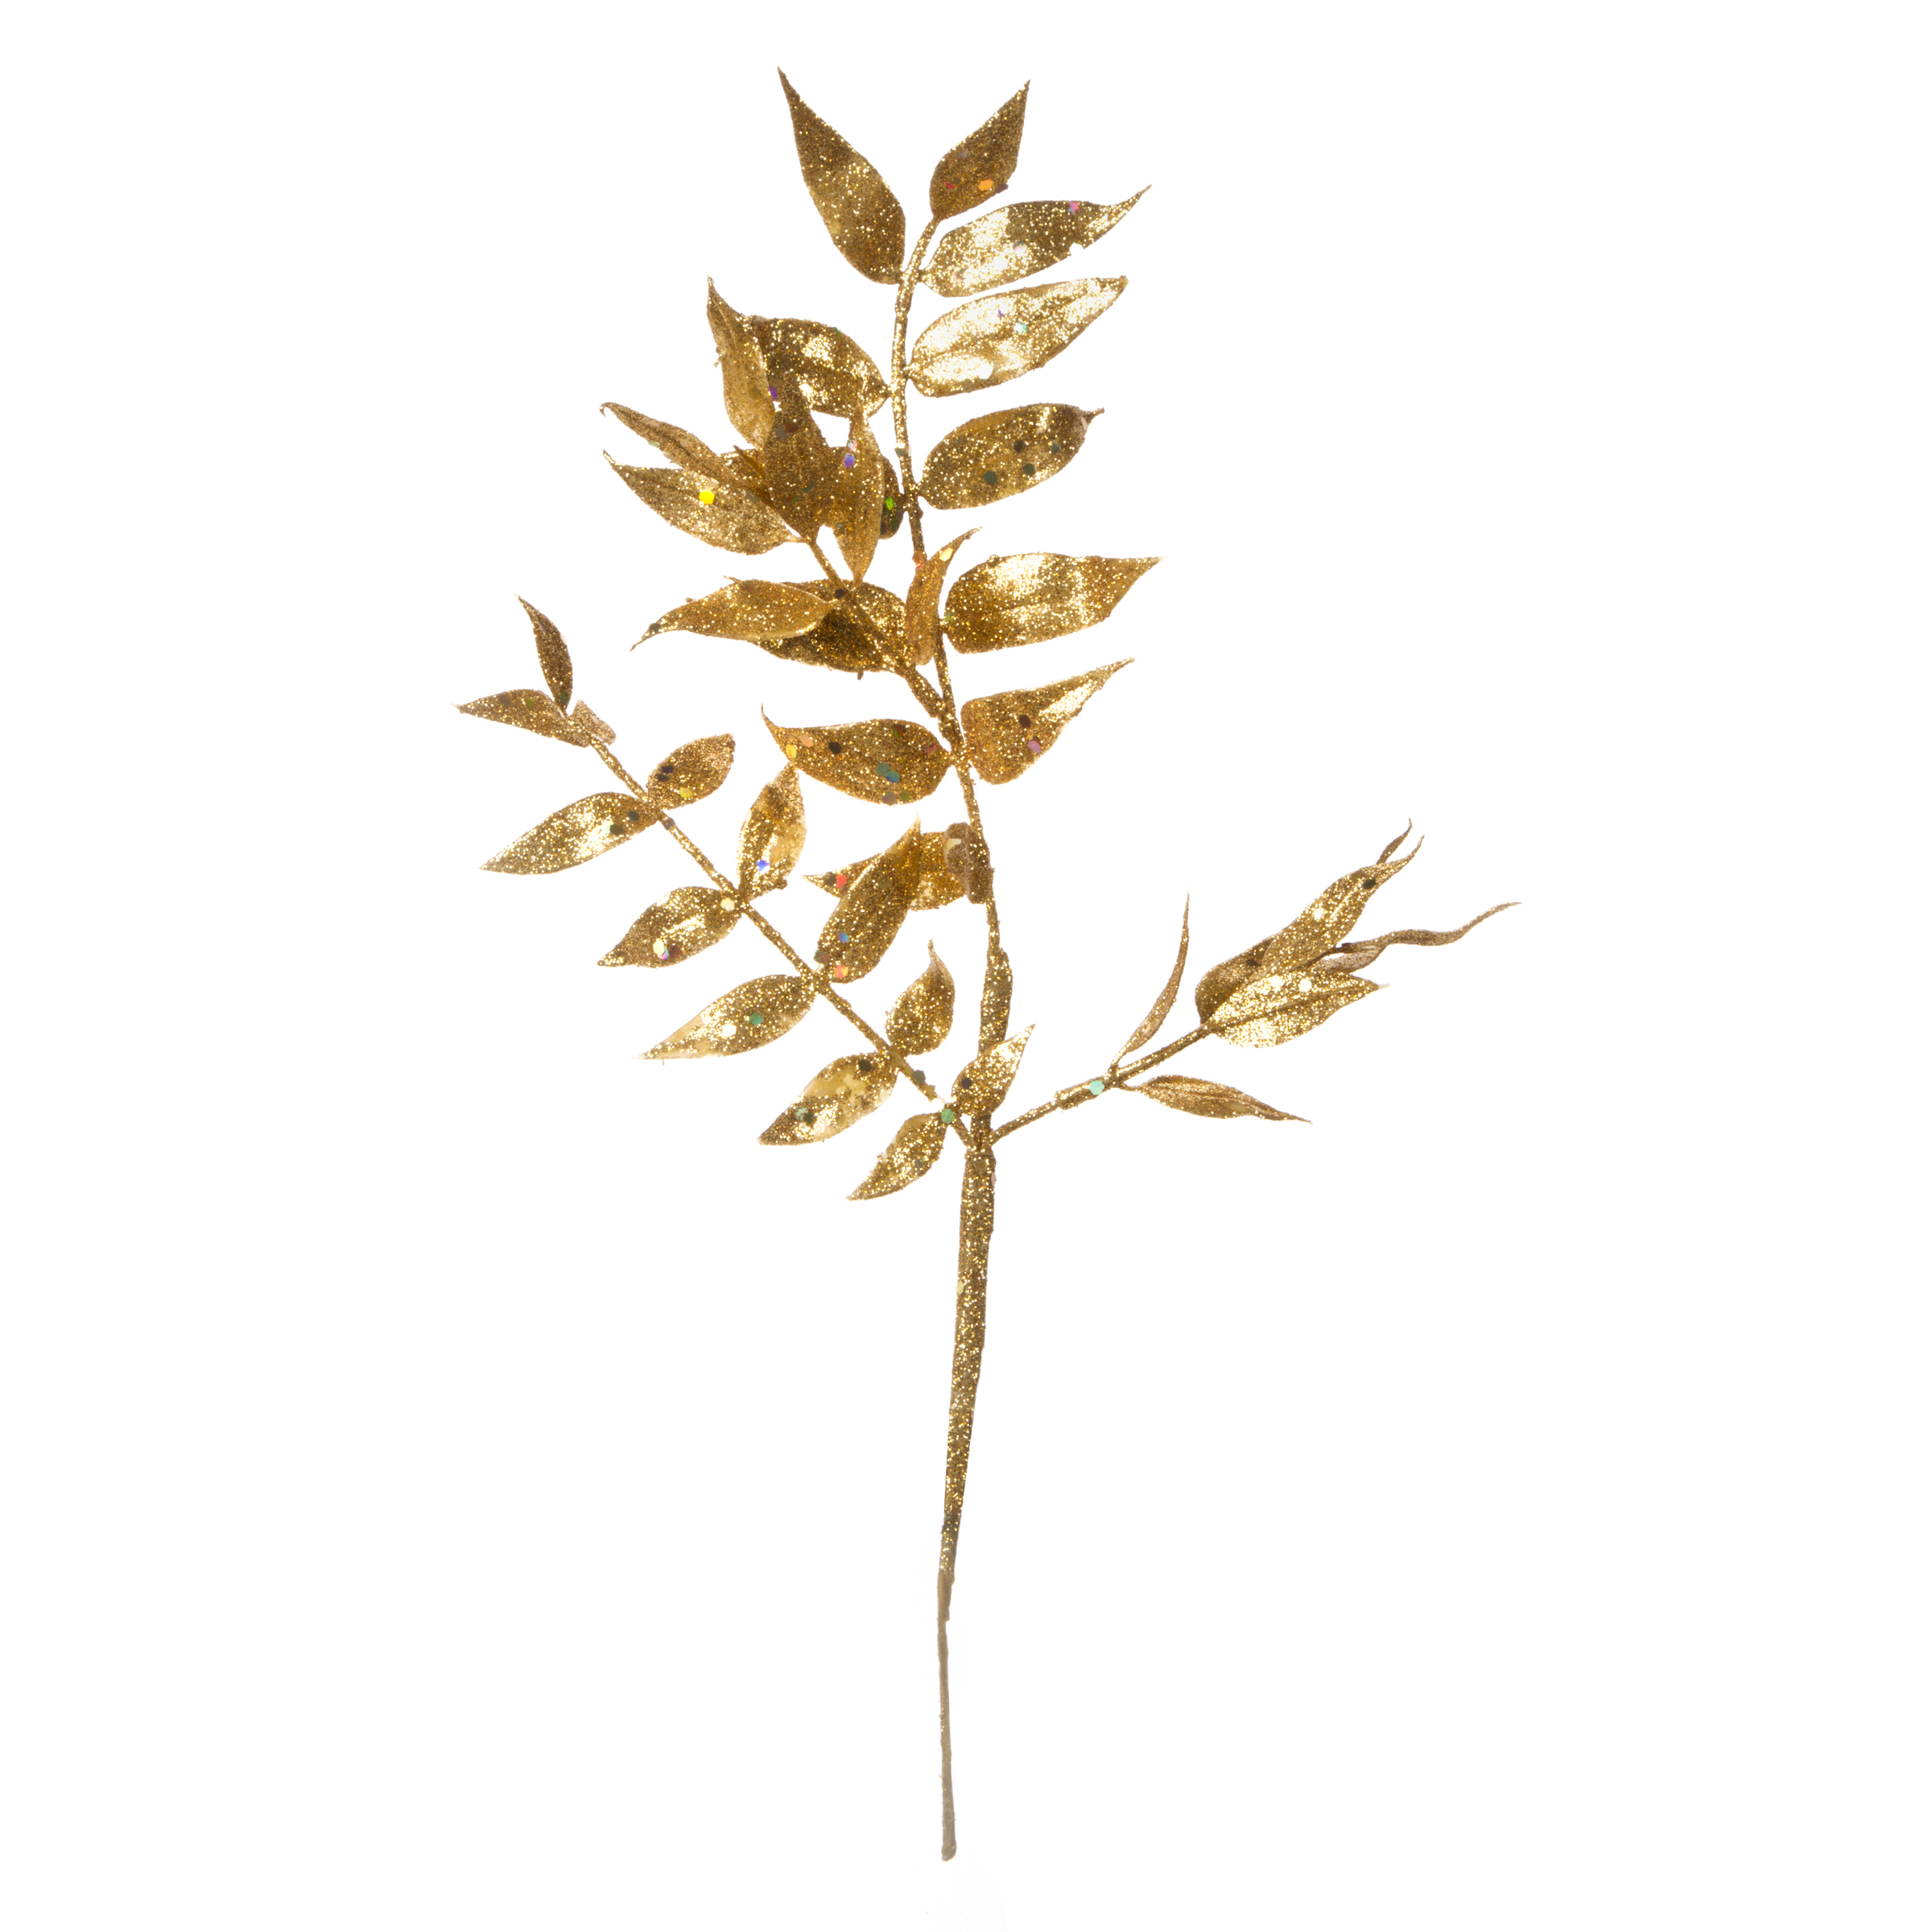 Darice Gold Leaves Pick Glitter 12 inches 4 tips